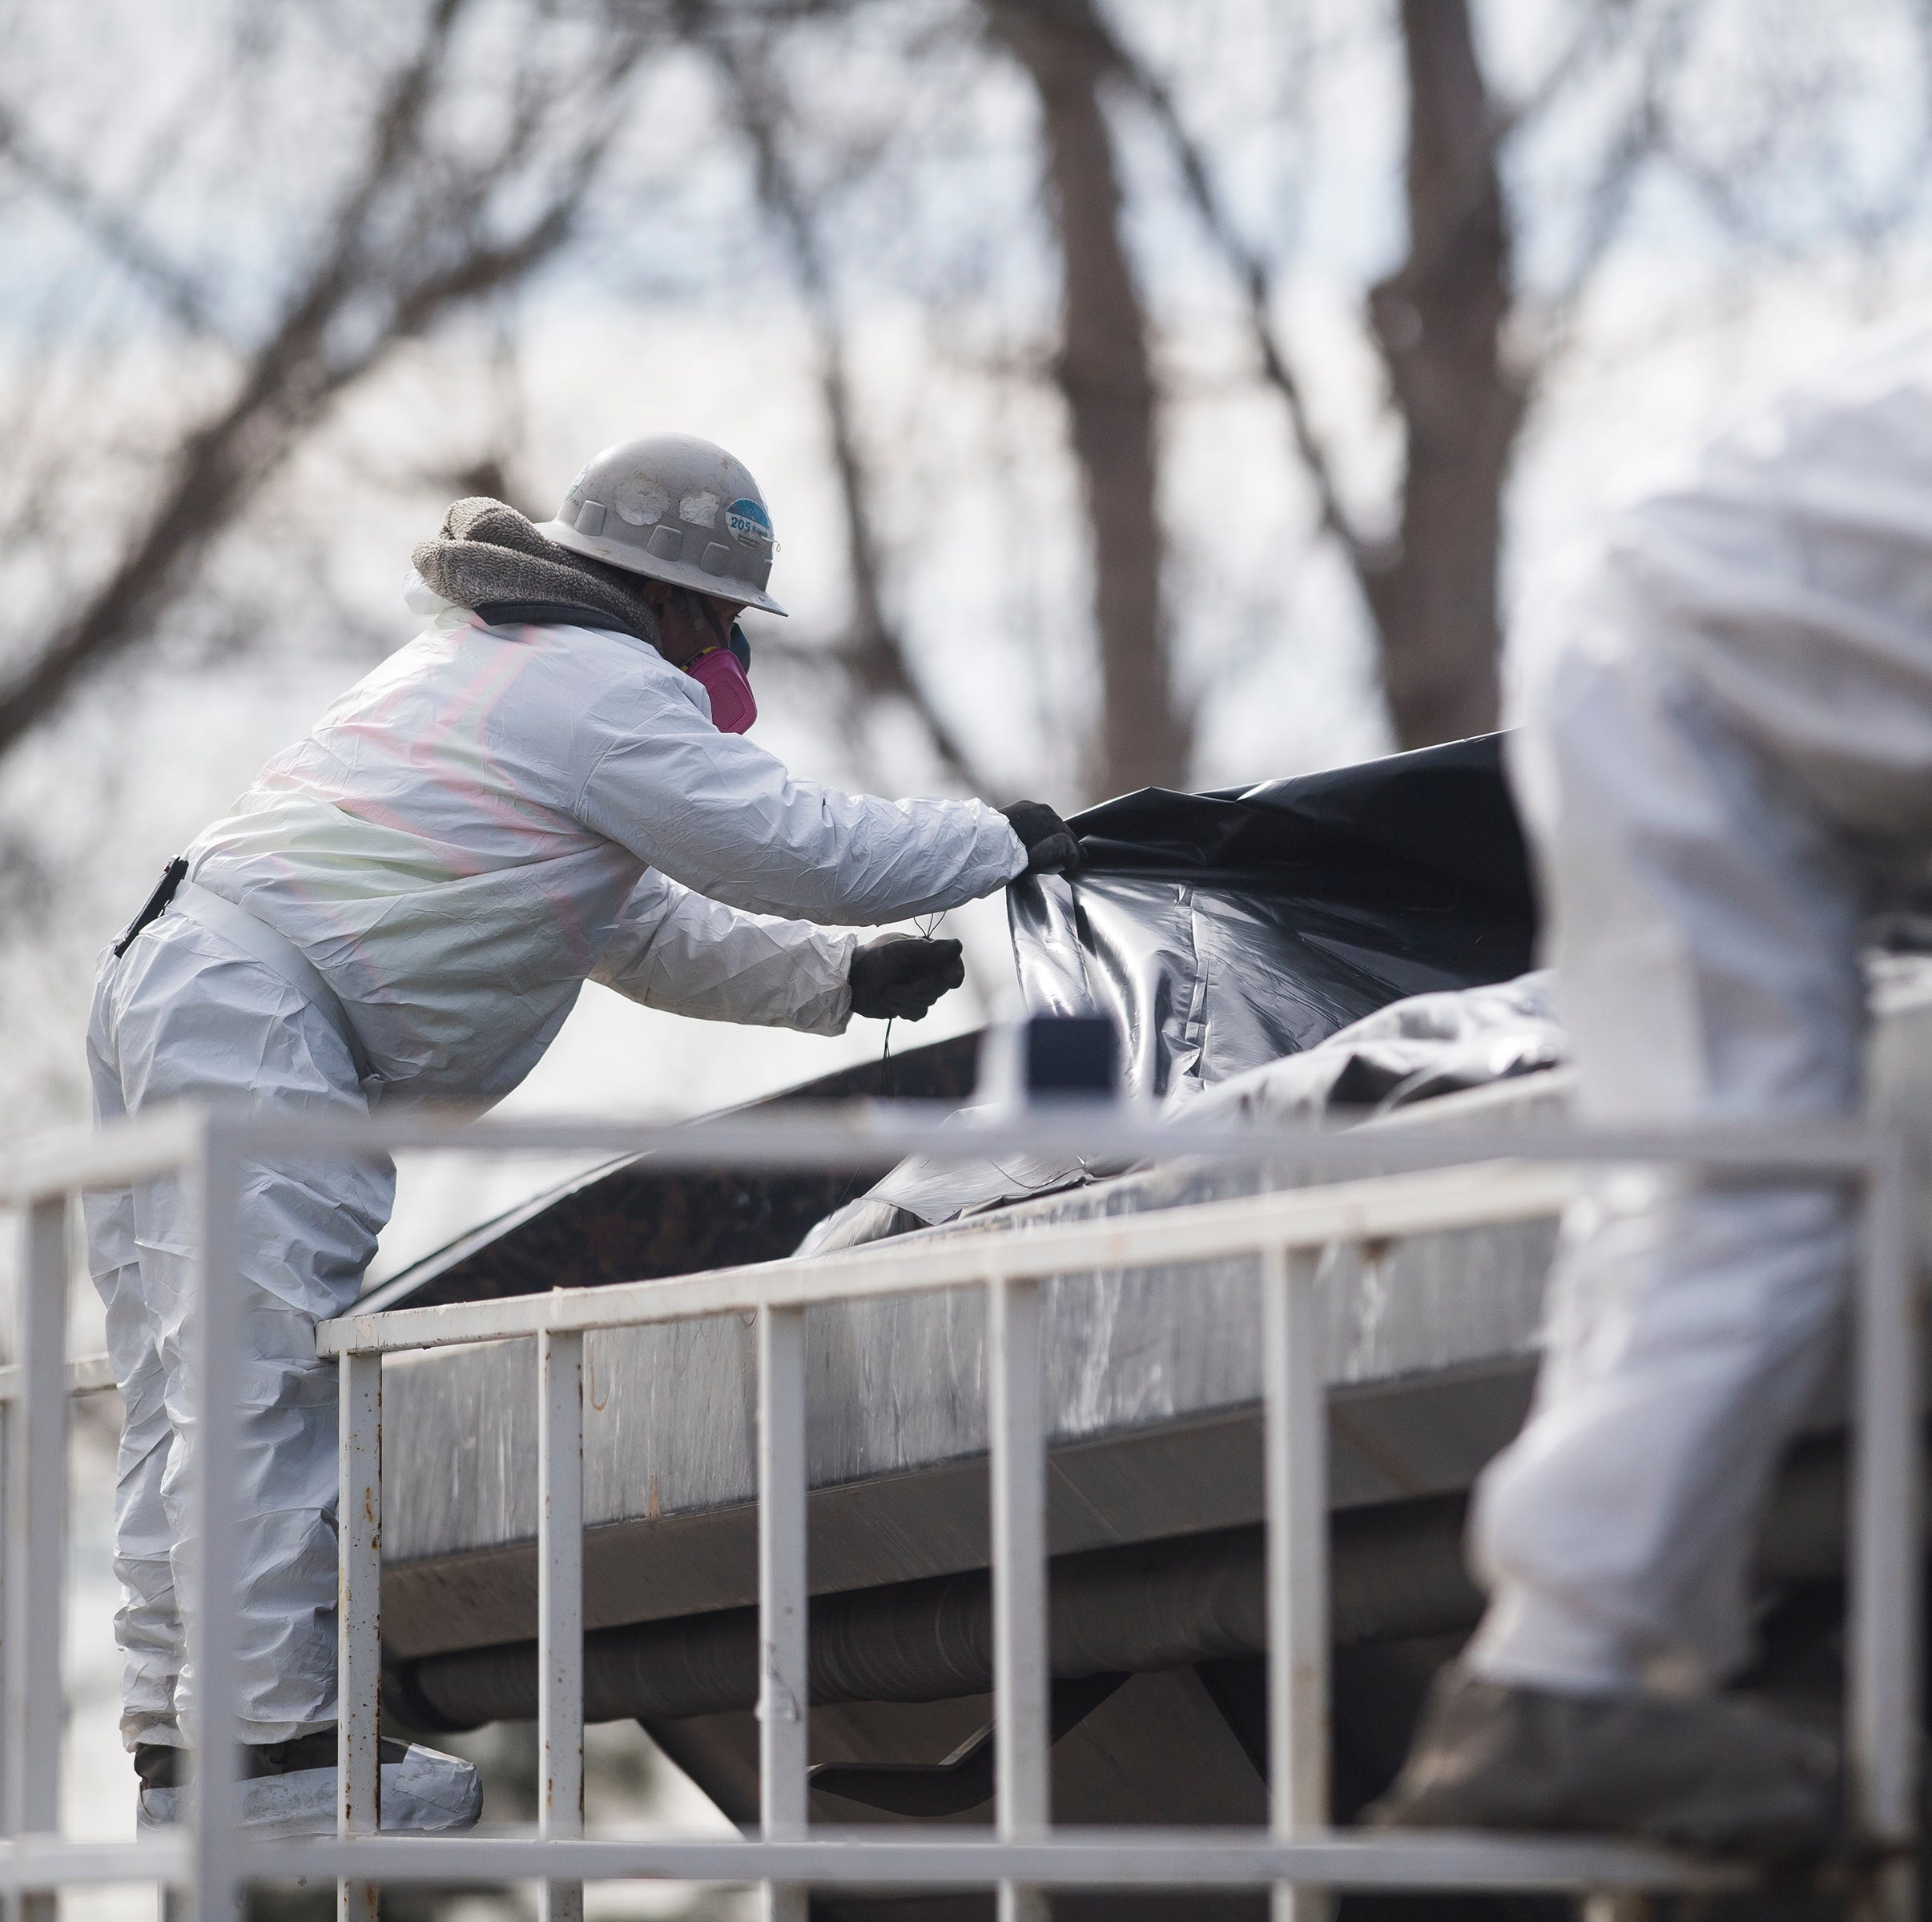 Years of complaints, criminal issues end with demolition of meth-contaminated Loveland home